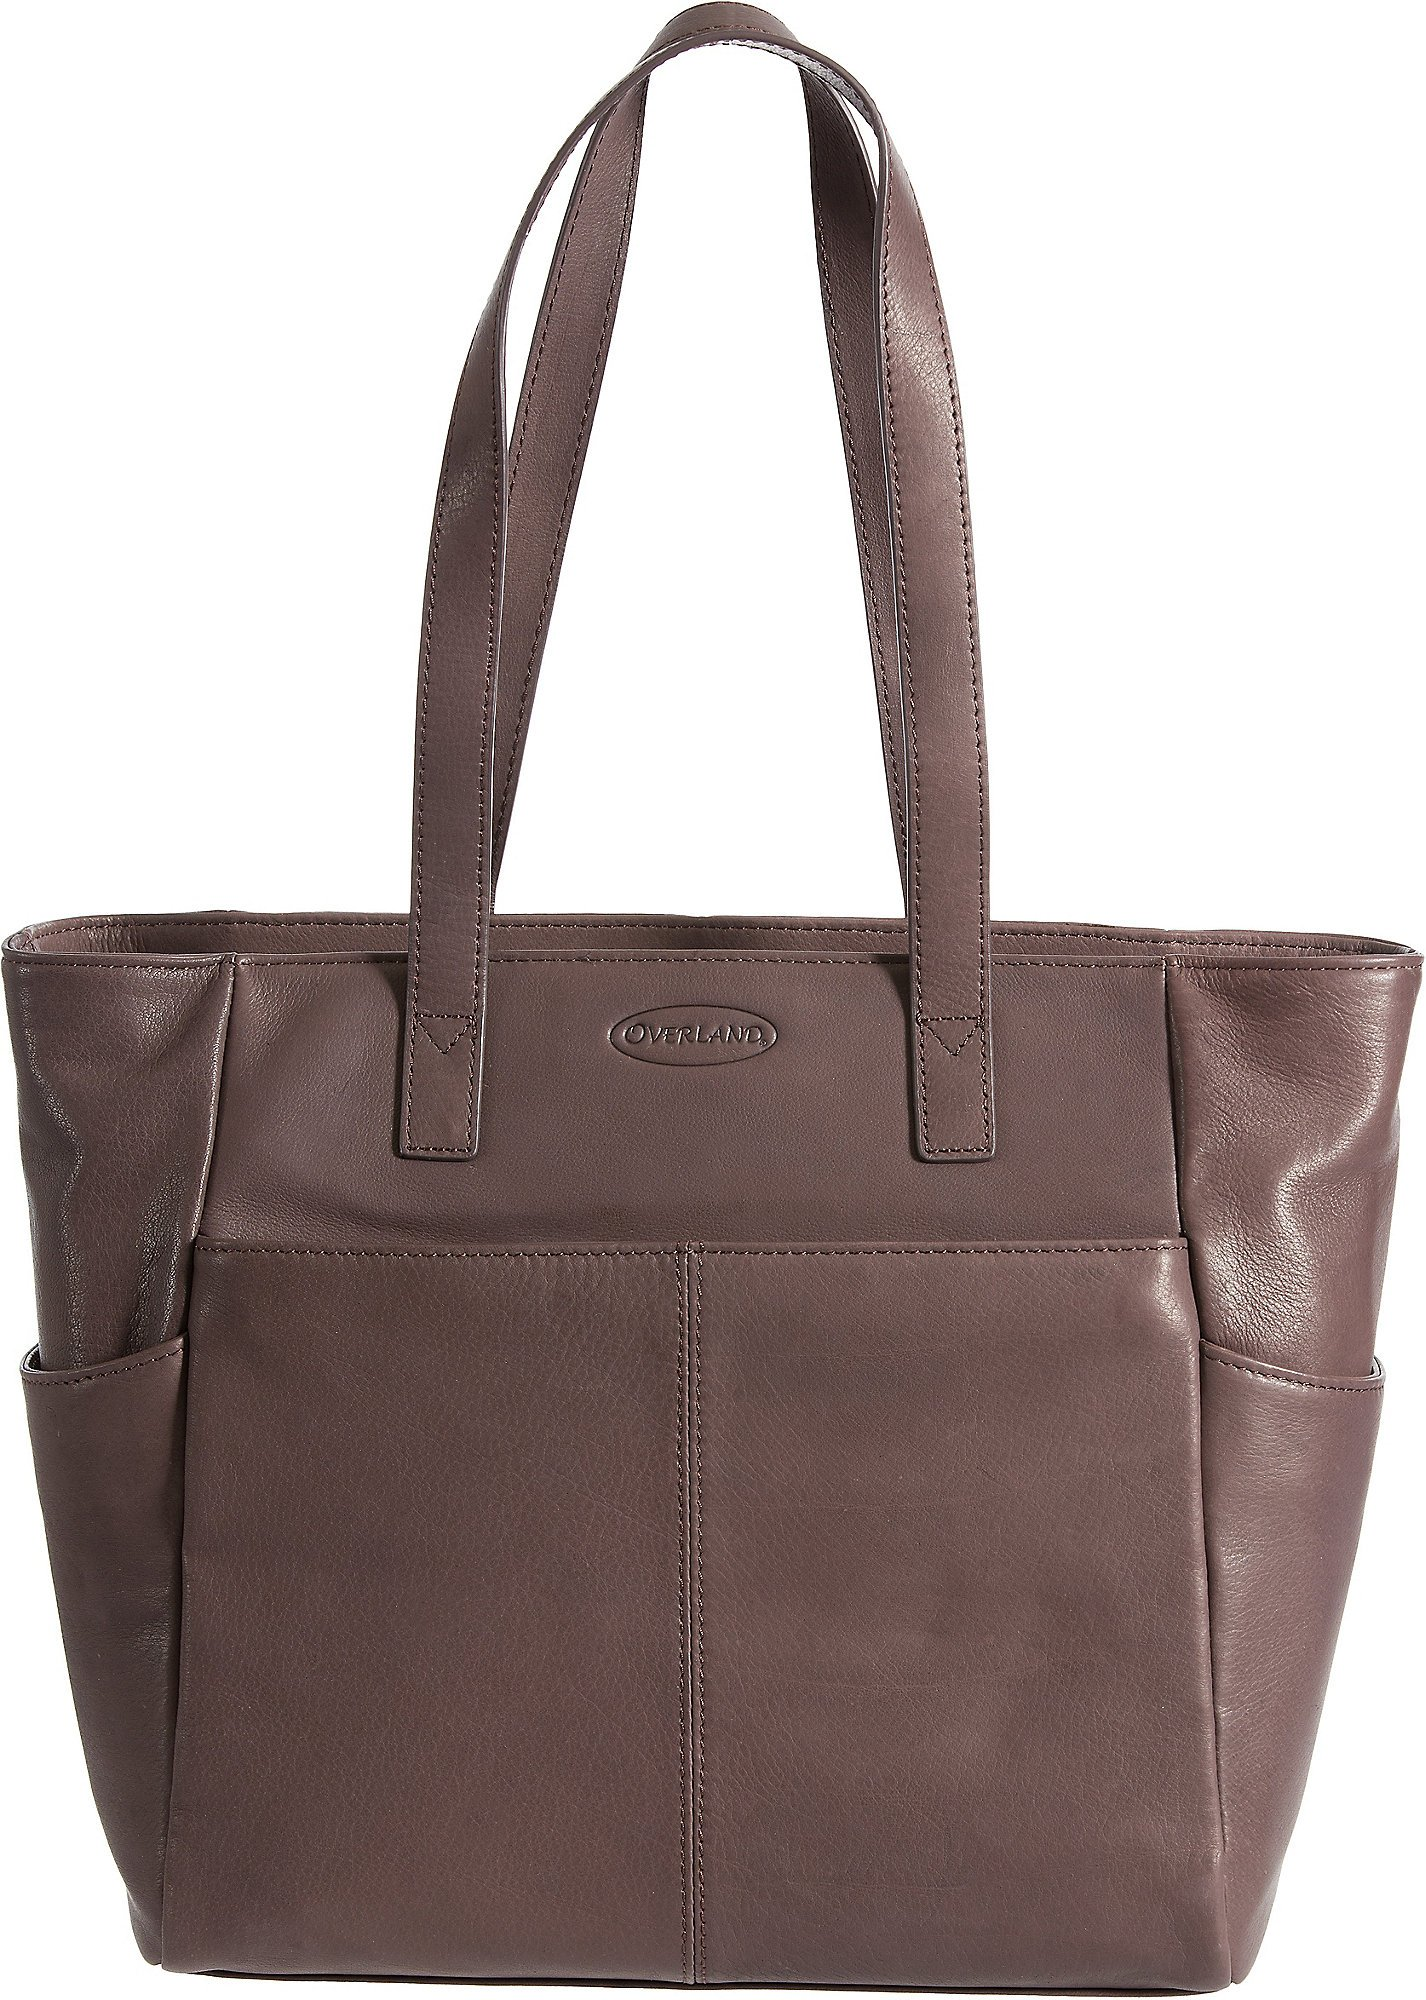 Nashua Leather Tote Bag, BROWN, Size 1 Size